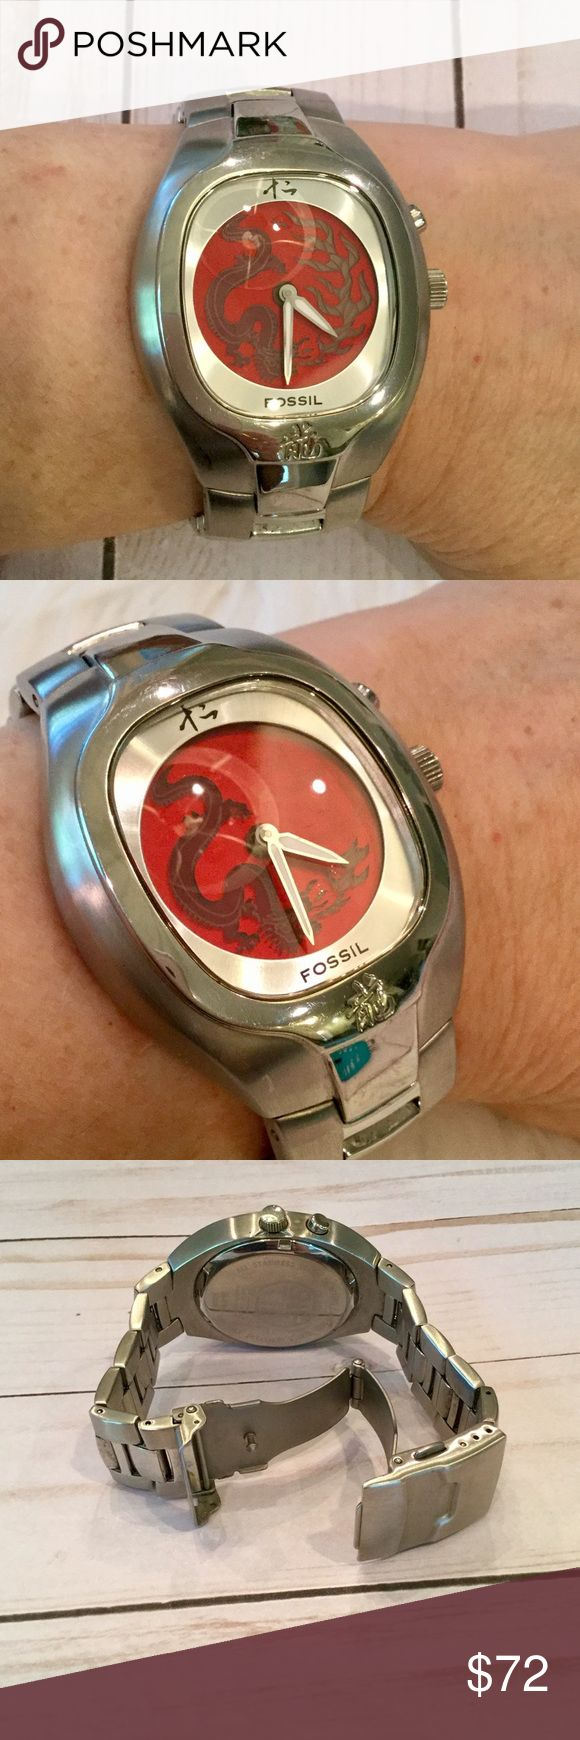 """Fossil Big Tic Animated Dragon Face Watch, EUC ⭐️Authentic Fossil Big Tic Wristwatch ⭐️Stainless steel band ⭐️Red Dragon face that's animated; it disappears then reappears. See first two photos. ⭐️New Battery and running perfectly ⭐️The inside measures 7.5"""" around ⭐️Condition: Crystal looks excellent with no scratches. Some minor scuffs on stainless steel around the crystal from normal wear. In excellent preowned condition.                             (Sandy) Fossil Accessories Watches"""